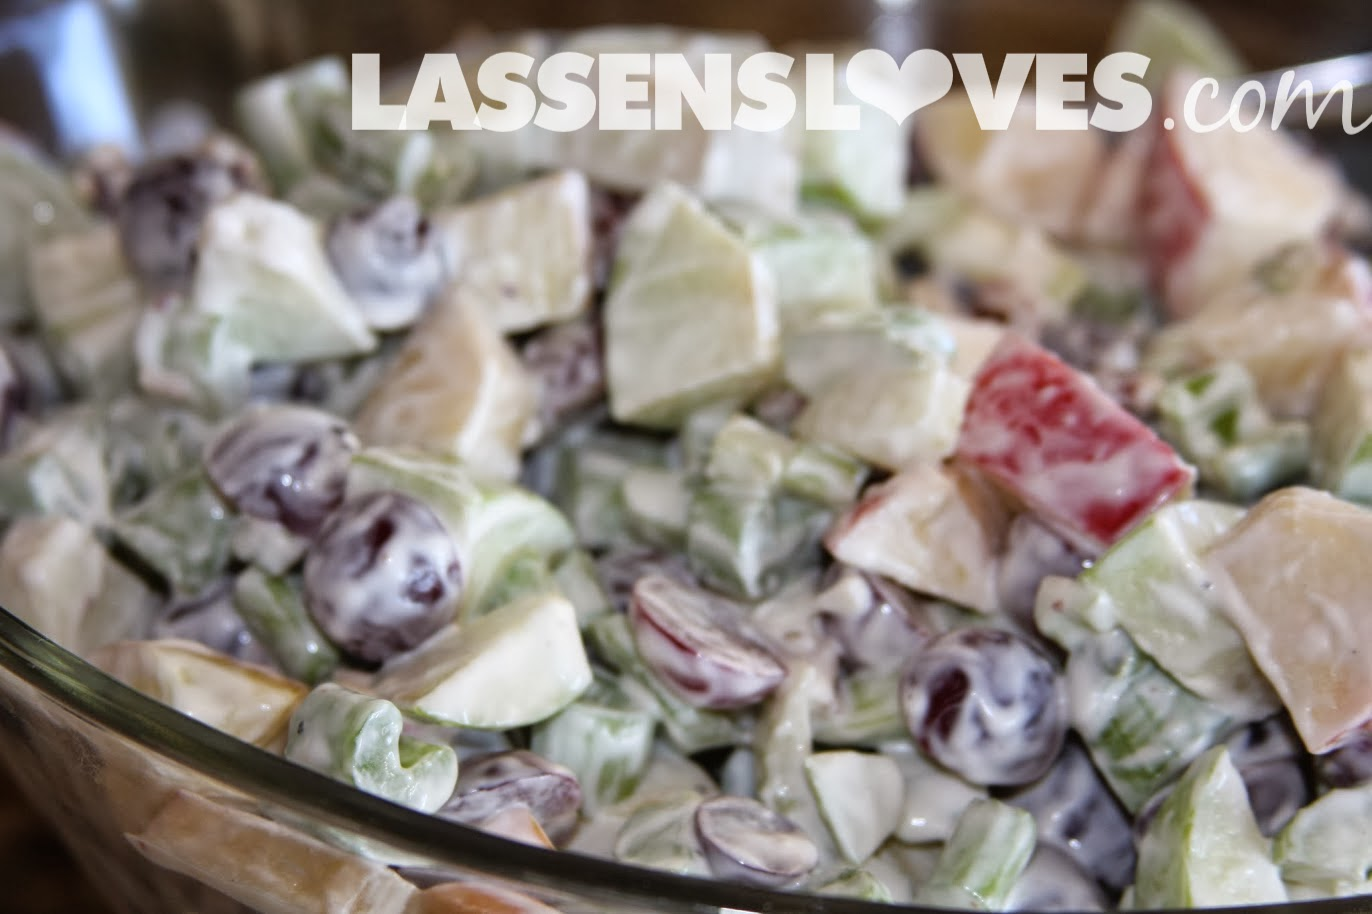 lassensloves.com, Lassen's, Lassens, waldorf+salad, grapes, apples, salad